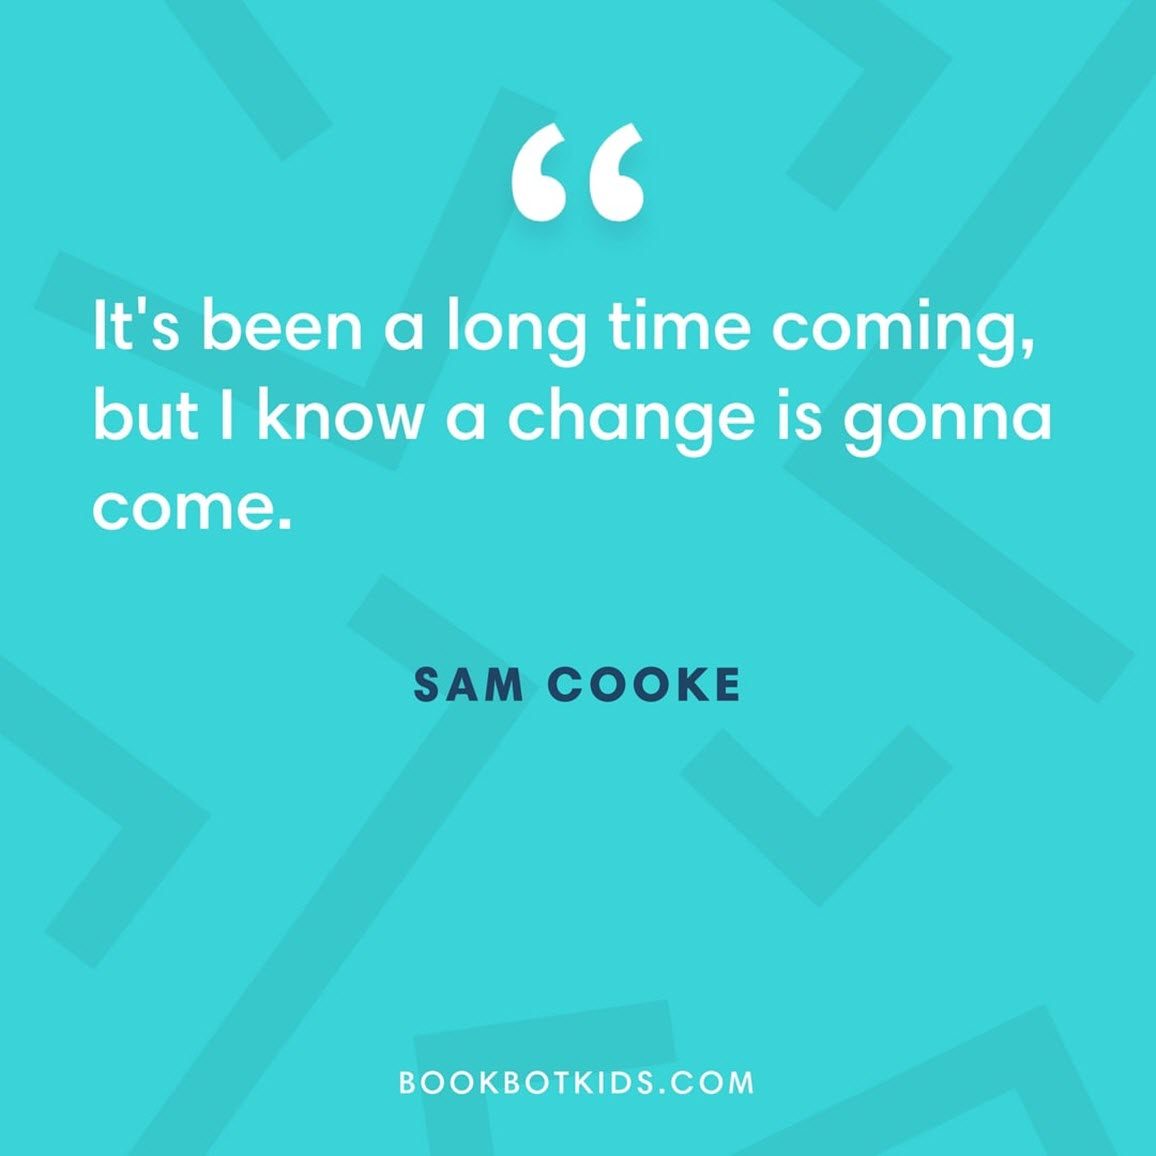 It's been a long time coming, but I know a change is gonna come.  – Sam Cooke